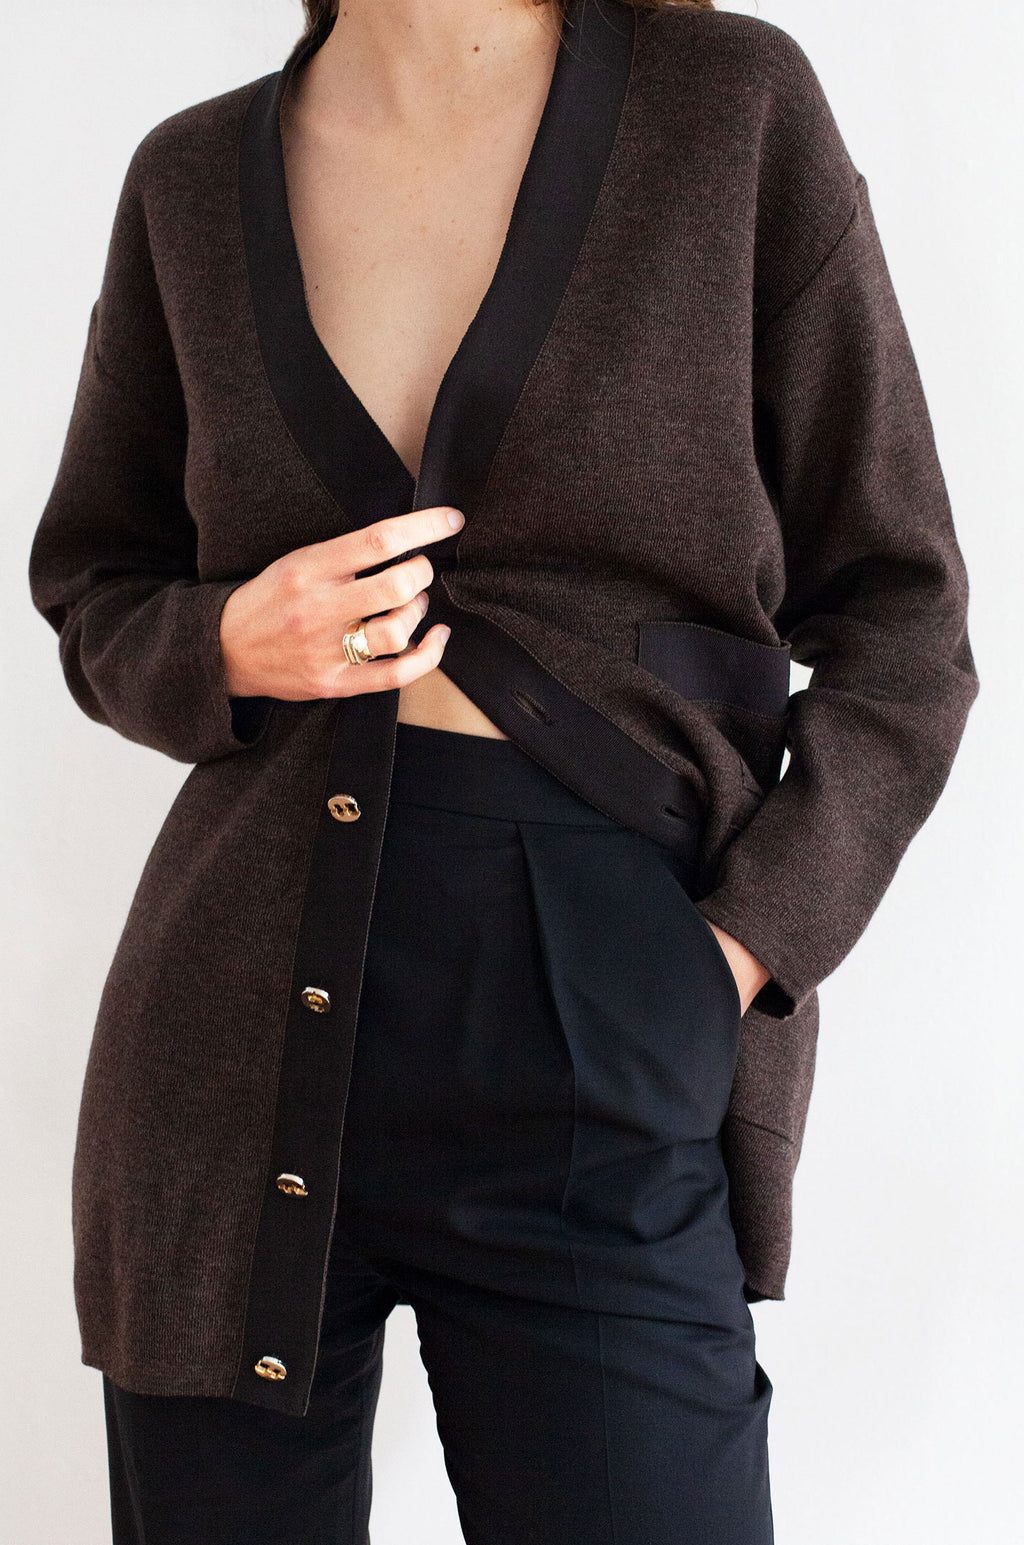 Salvatore Ferragamo Classic Brown Cardigan